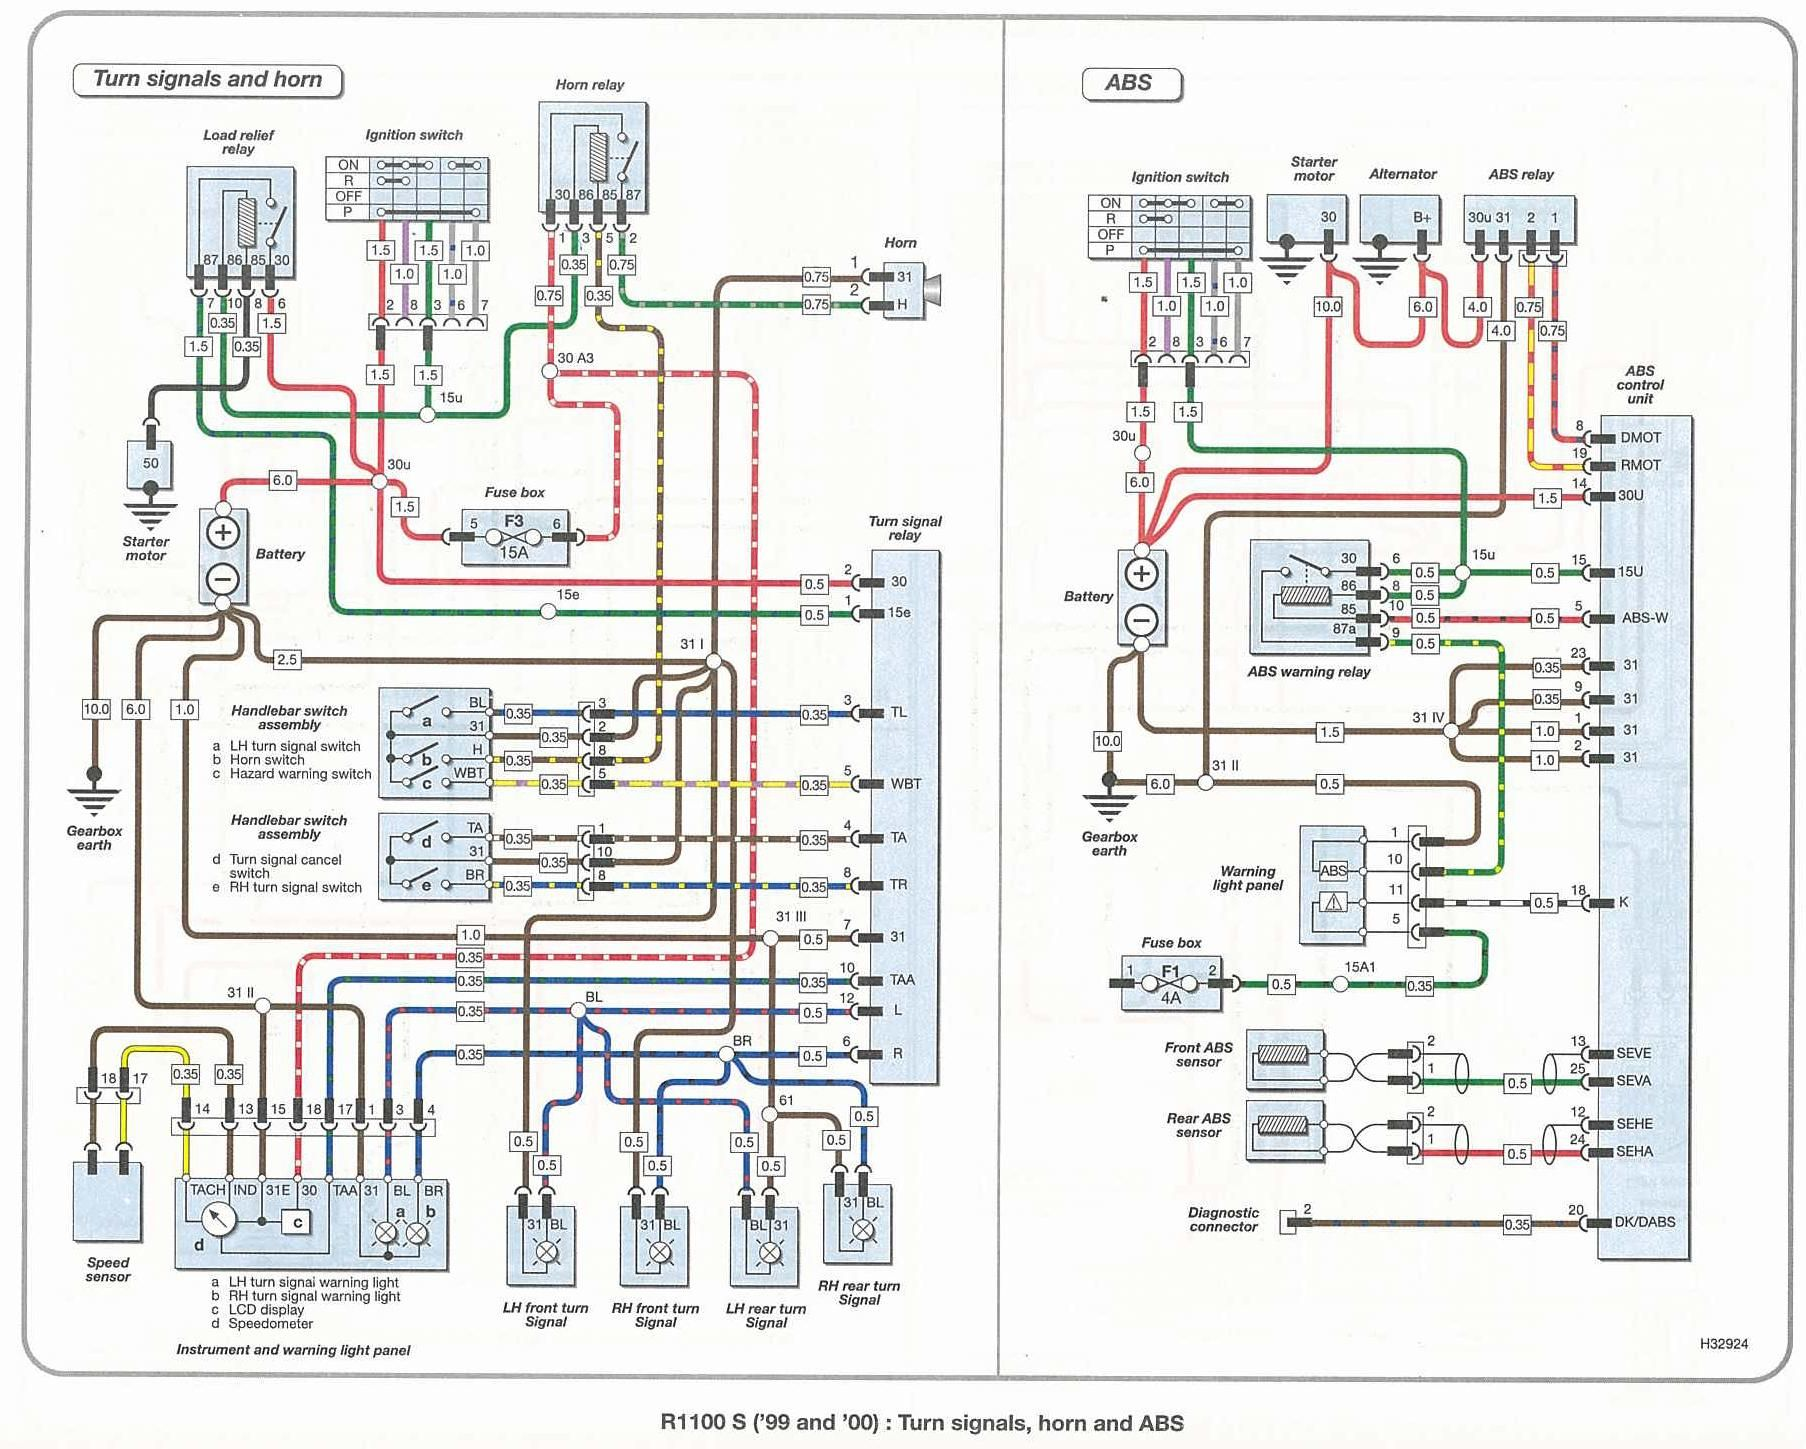 Bmw F650gs Electrical Wiring Diagram 7 Electrical Wiring Diagram Bmw E46 Bmw